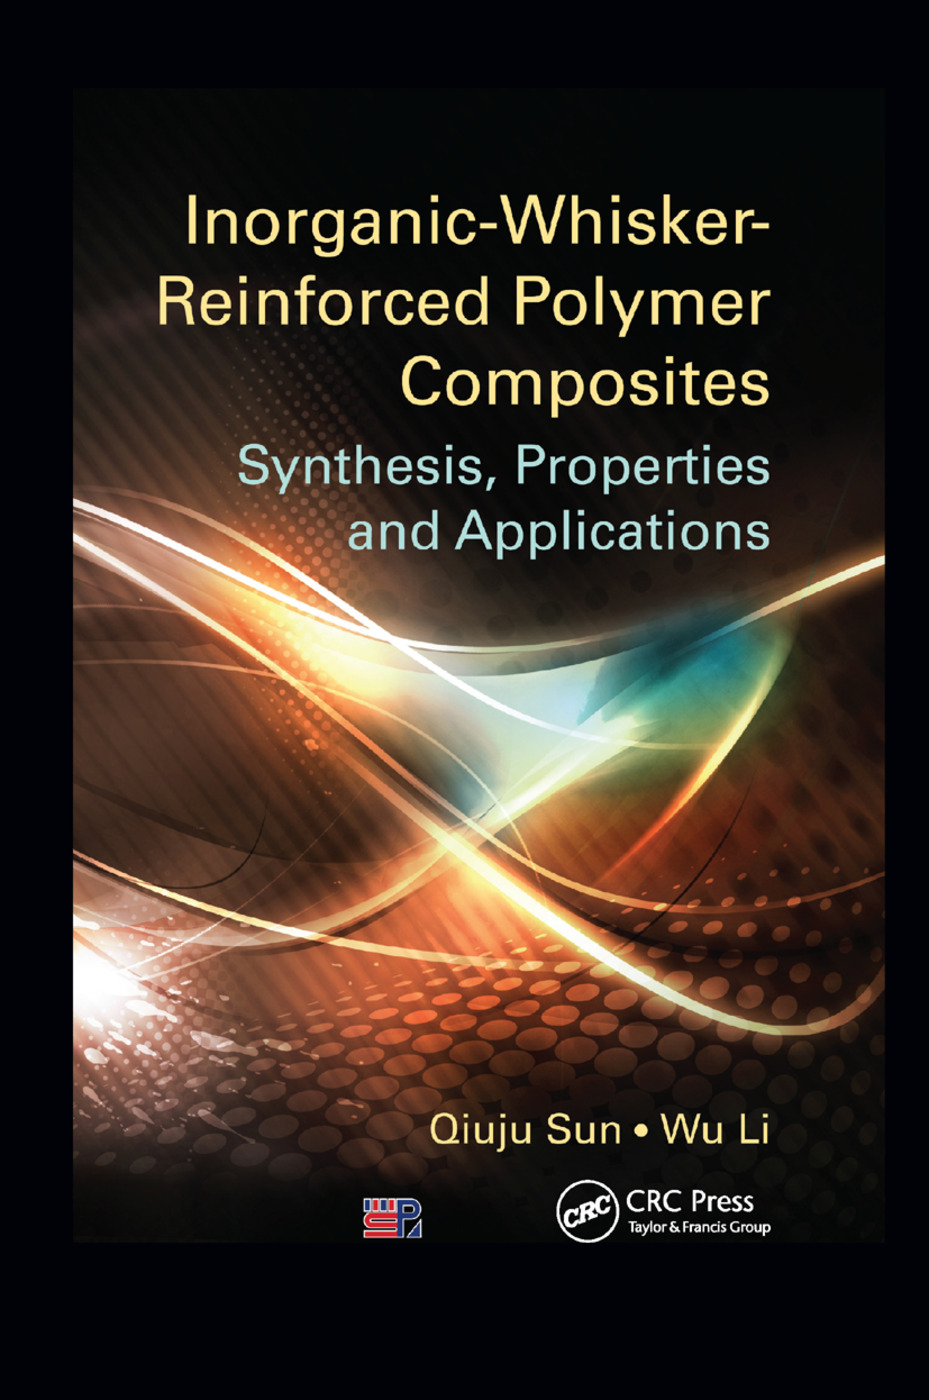 Inorganic-Whisker-Reinforced Polymer Composites